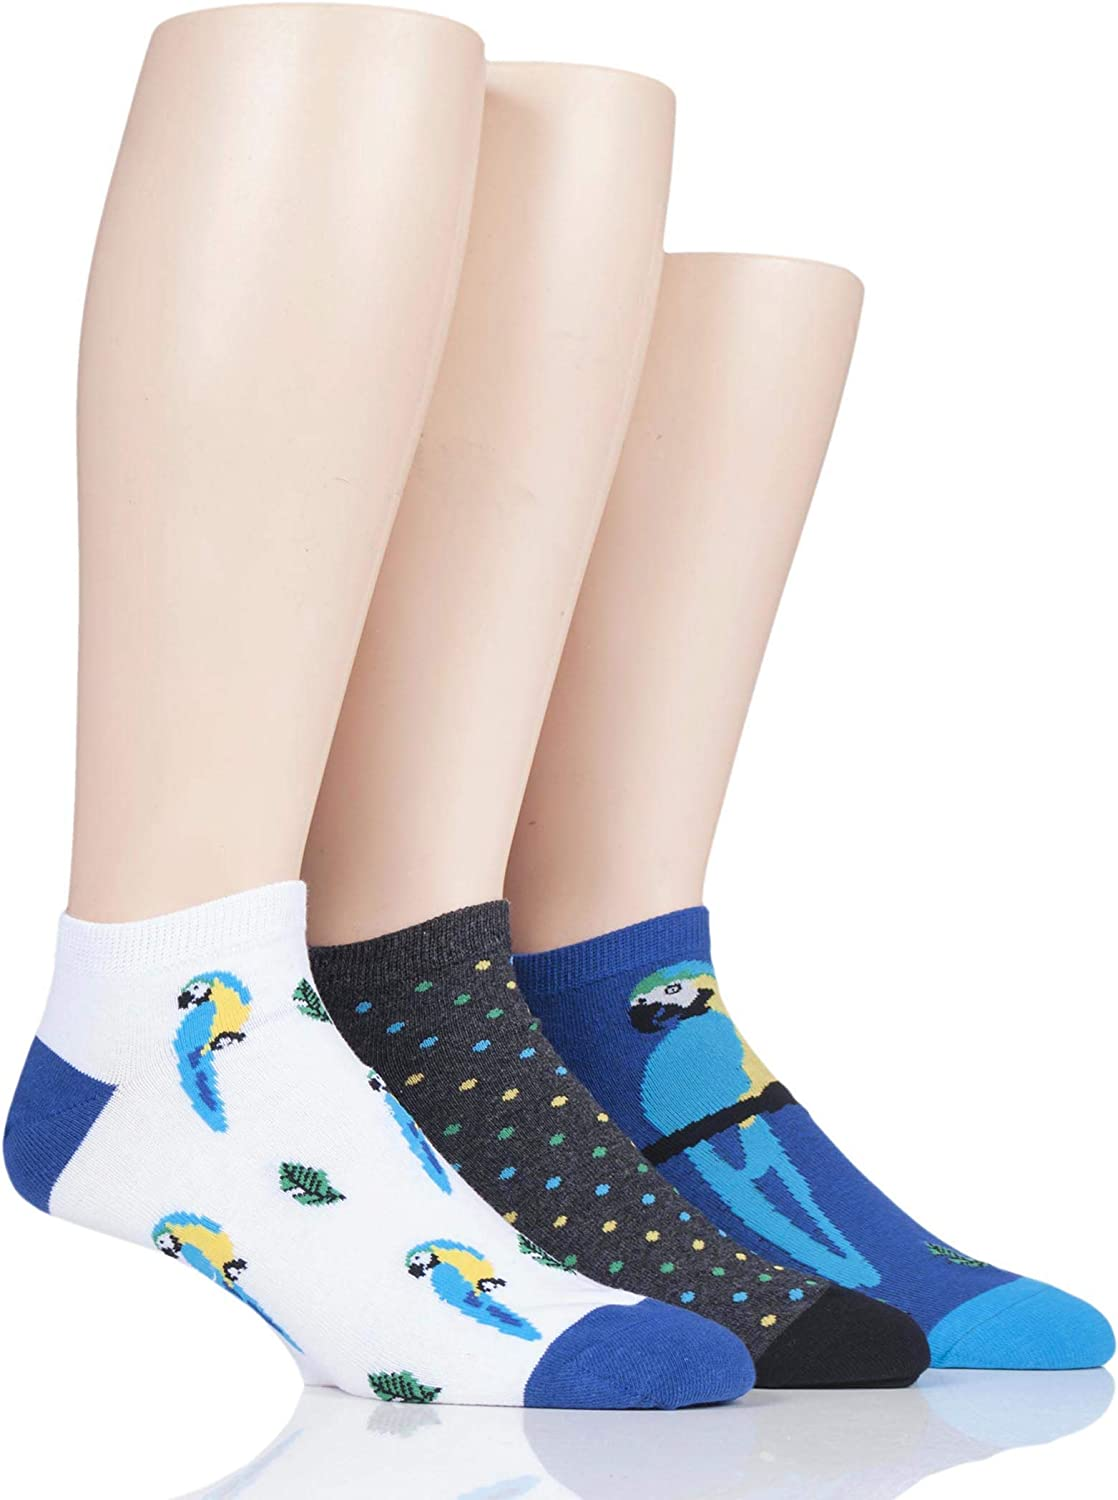 GIFTS Silly Socks Cotton Converse Trainers Sneakers Funny Present NOVELTY